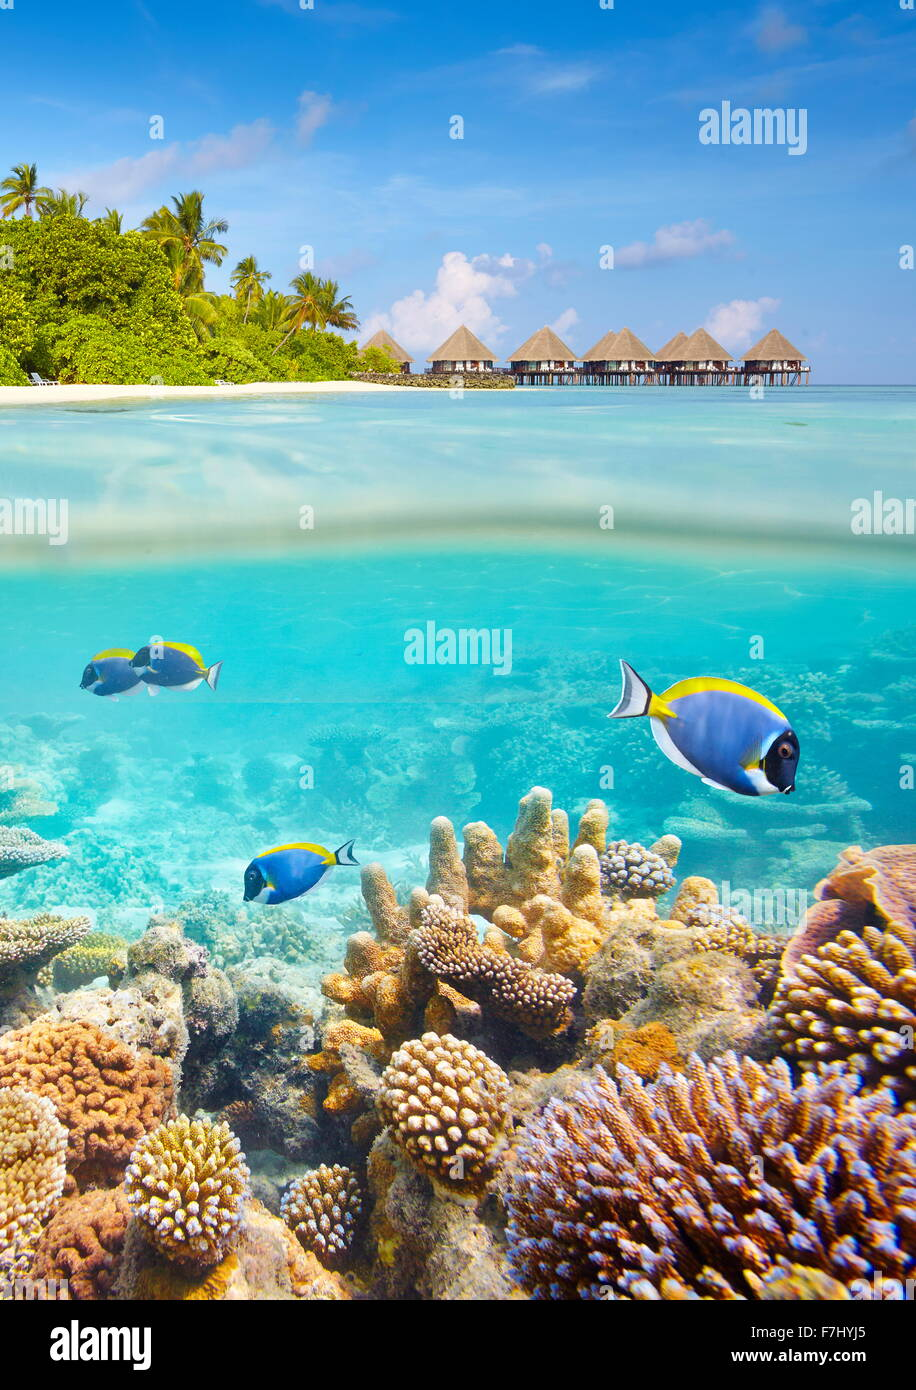 Underwater view with reef and fish, Maldives Islands - Stock Image